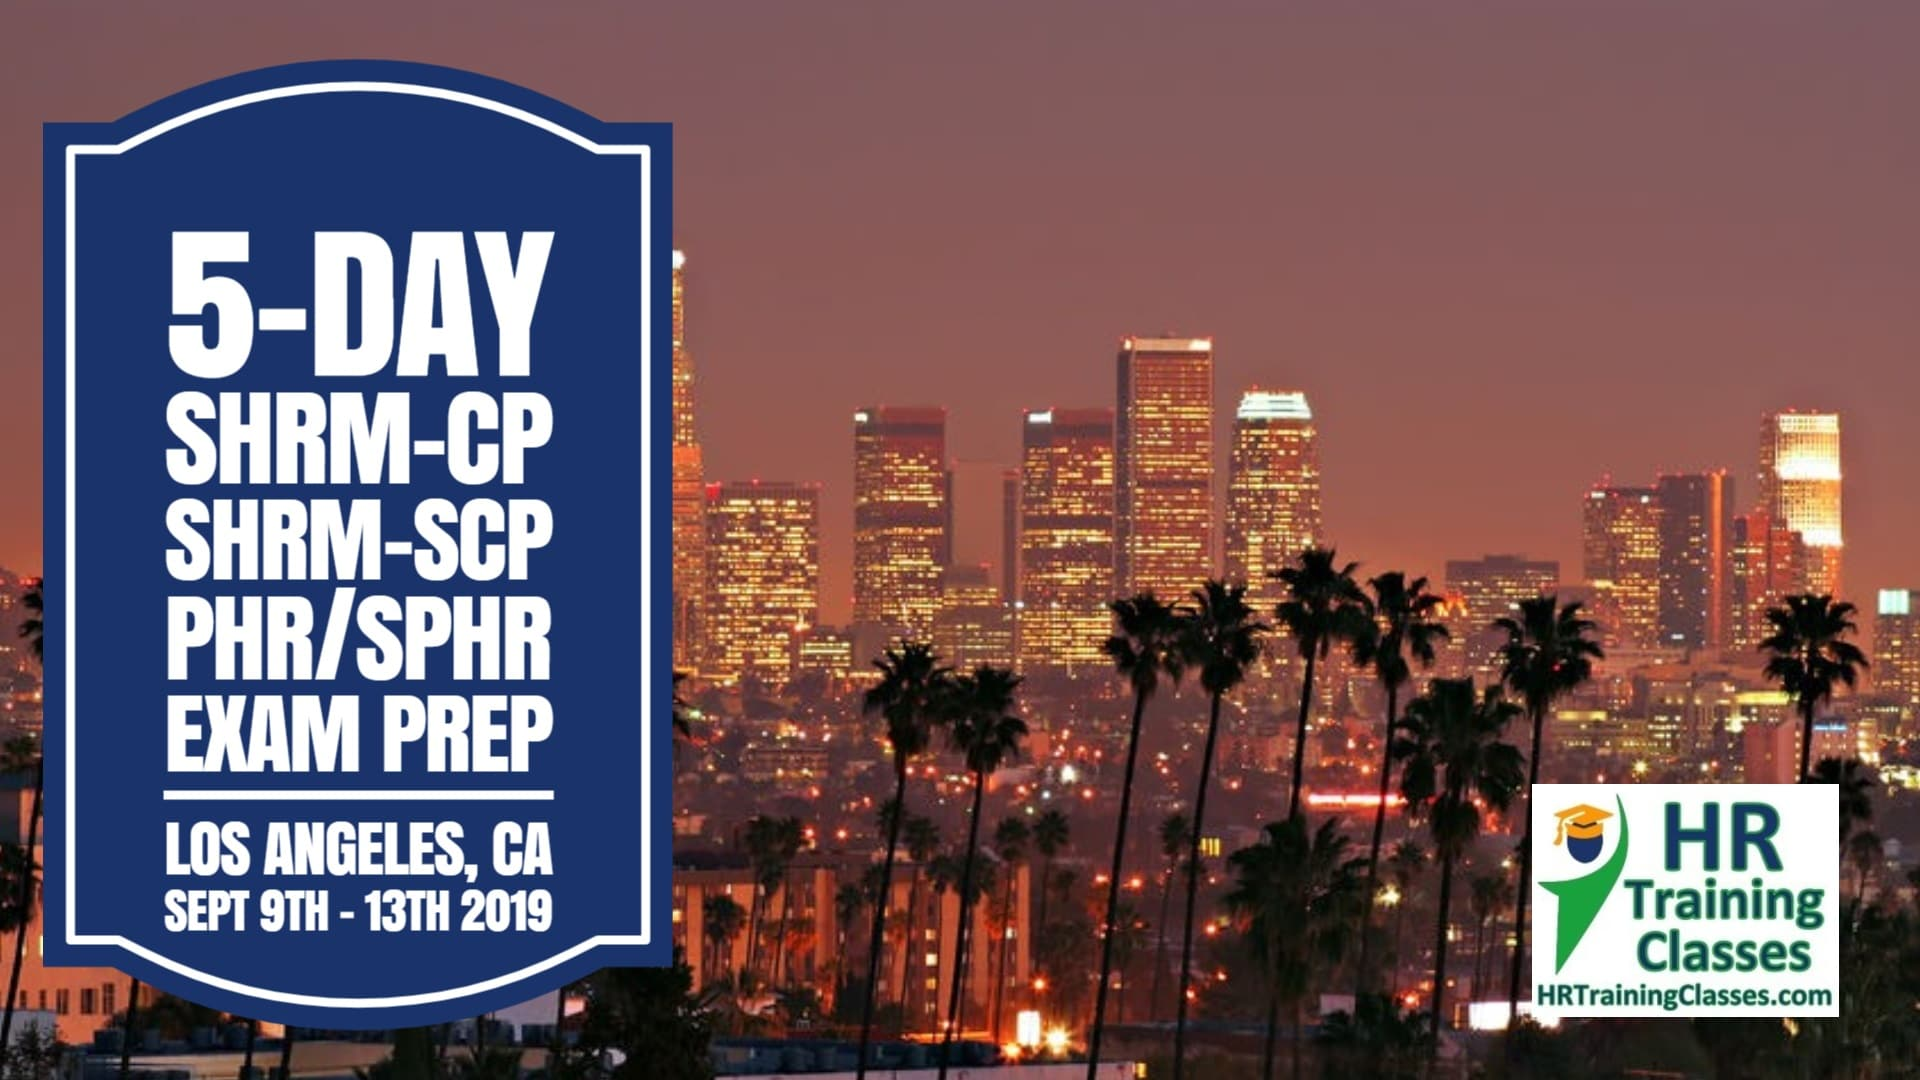 5 Day SHRM-CP, SHRM-SCP, PHR, SPHR Exam Prep Boot Camp in Los Angeles starting 9-9-19 and led by Elga lejarza-Penn